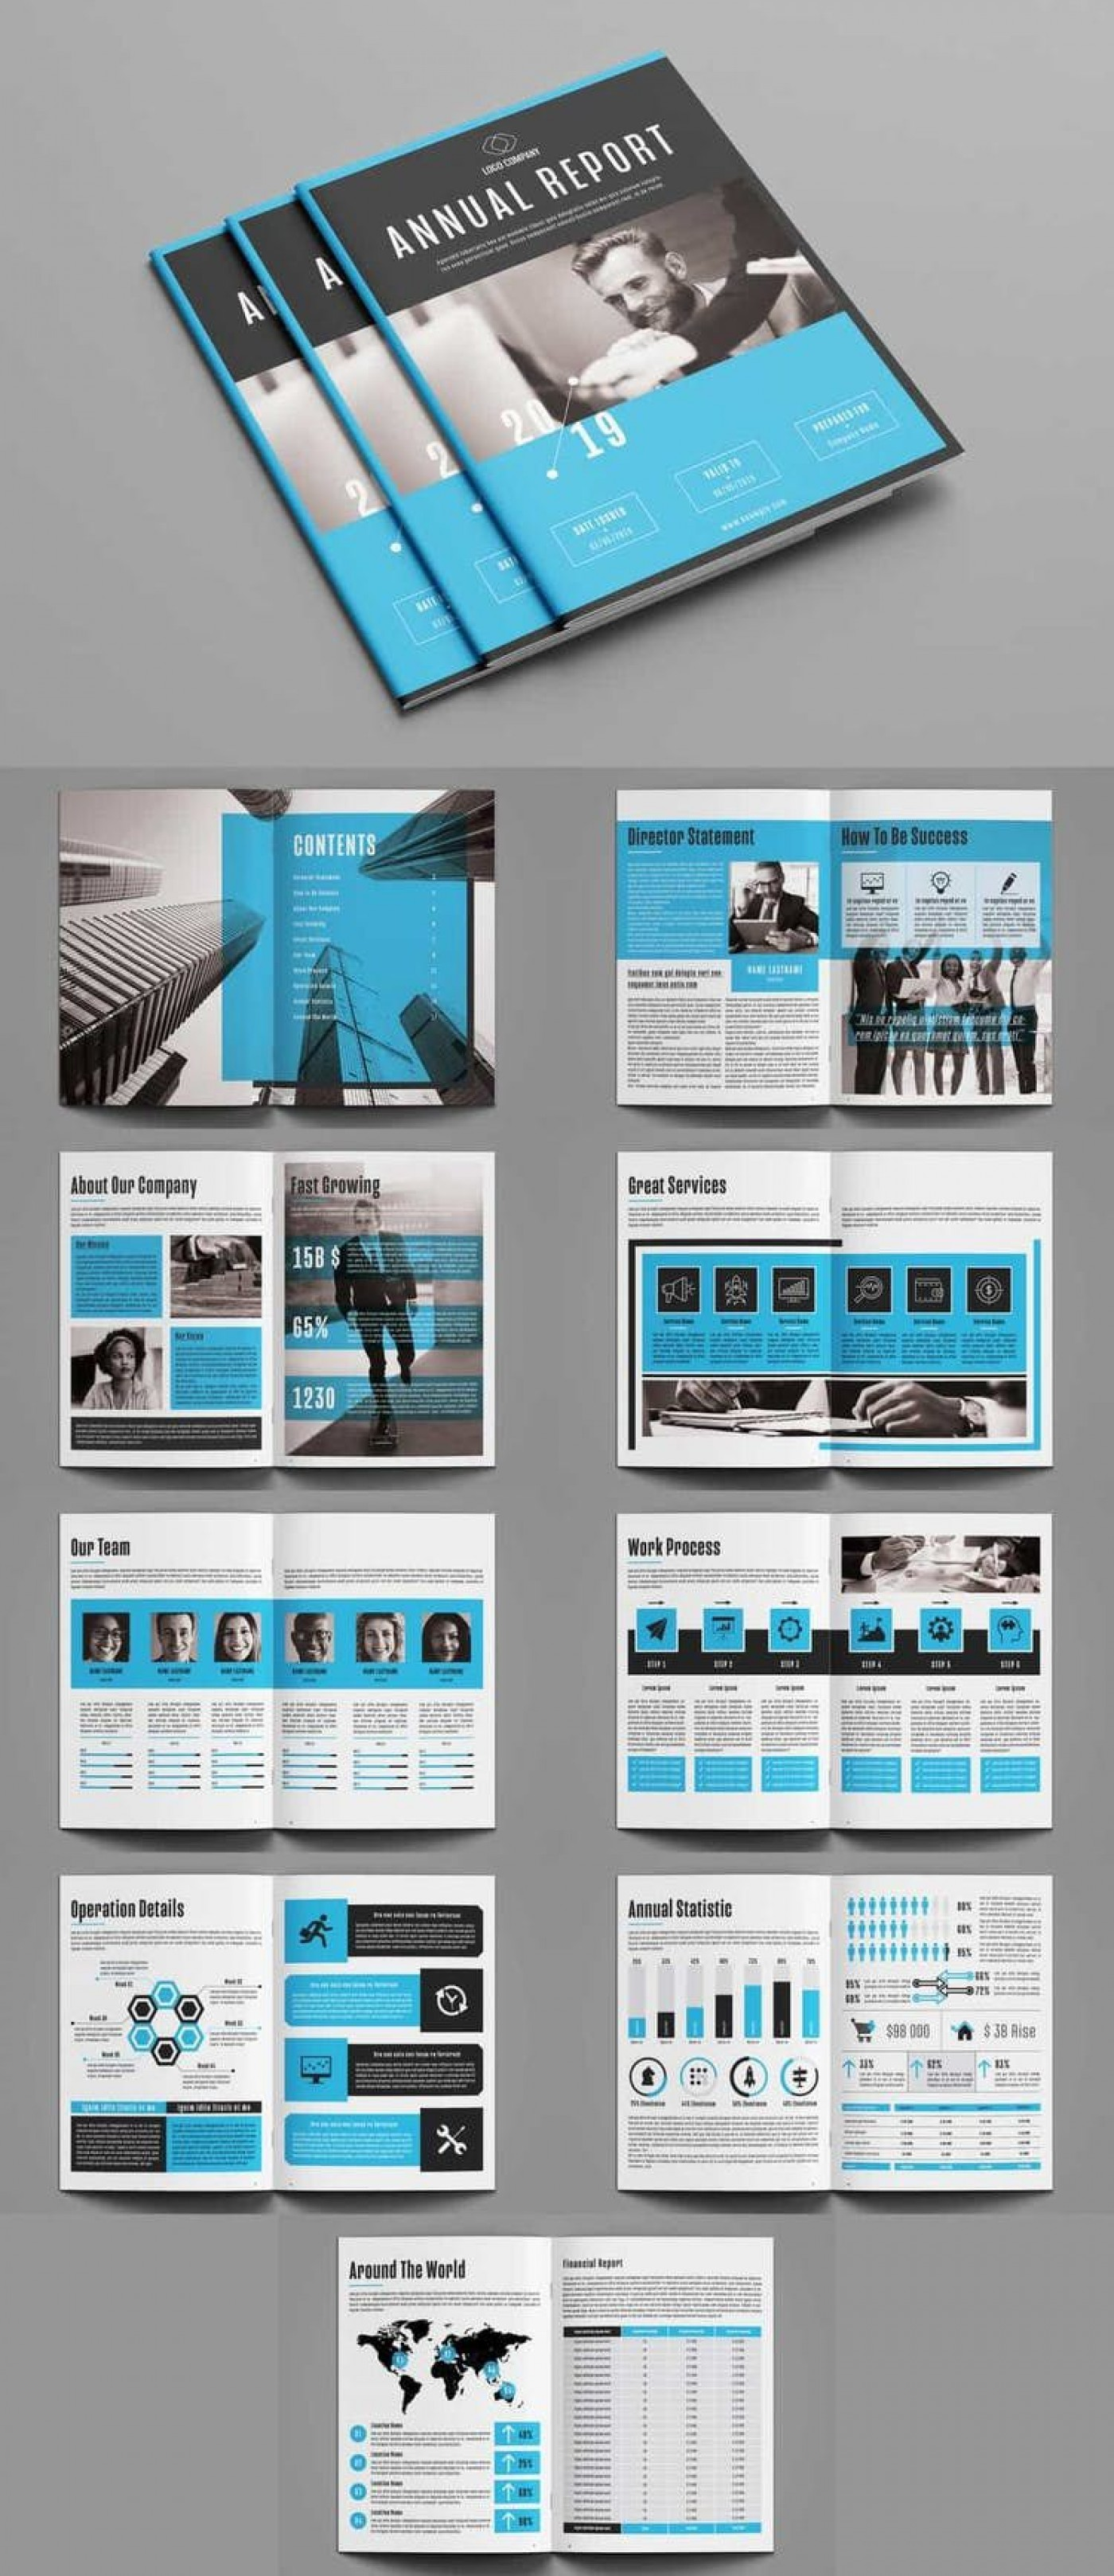 005 Best Annual Report Design Template Indesign Concept  Free Download1400